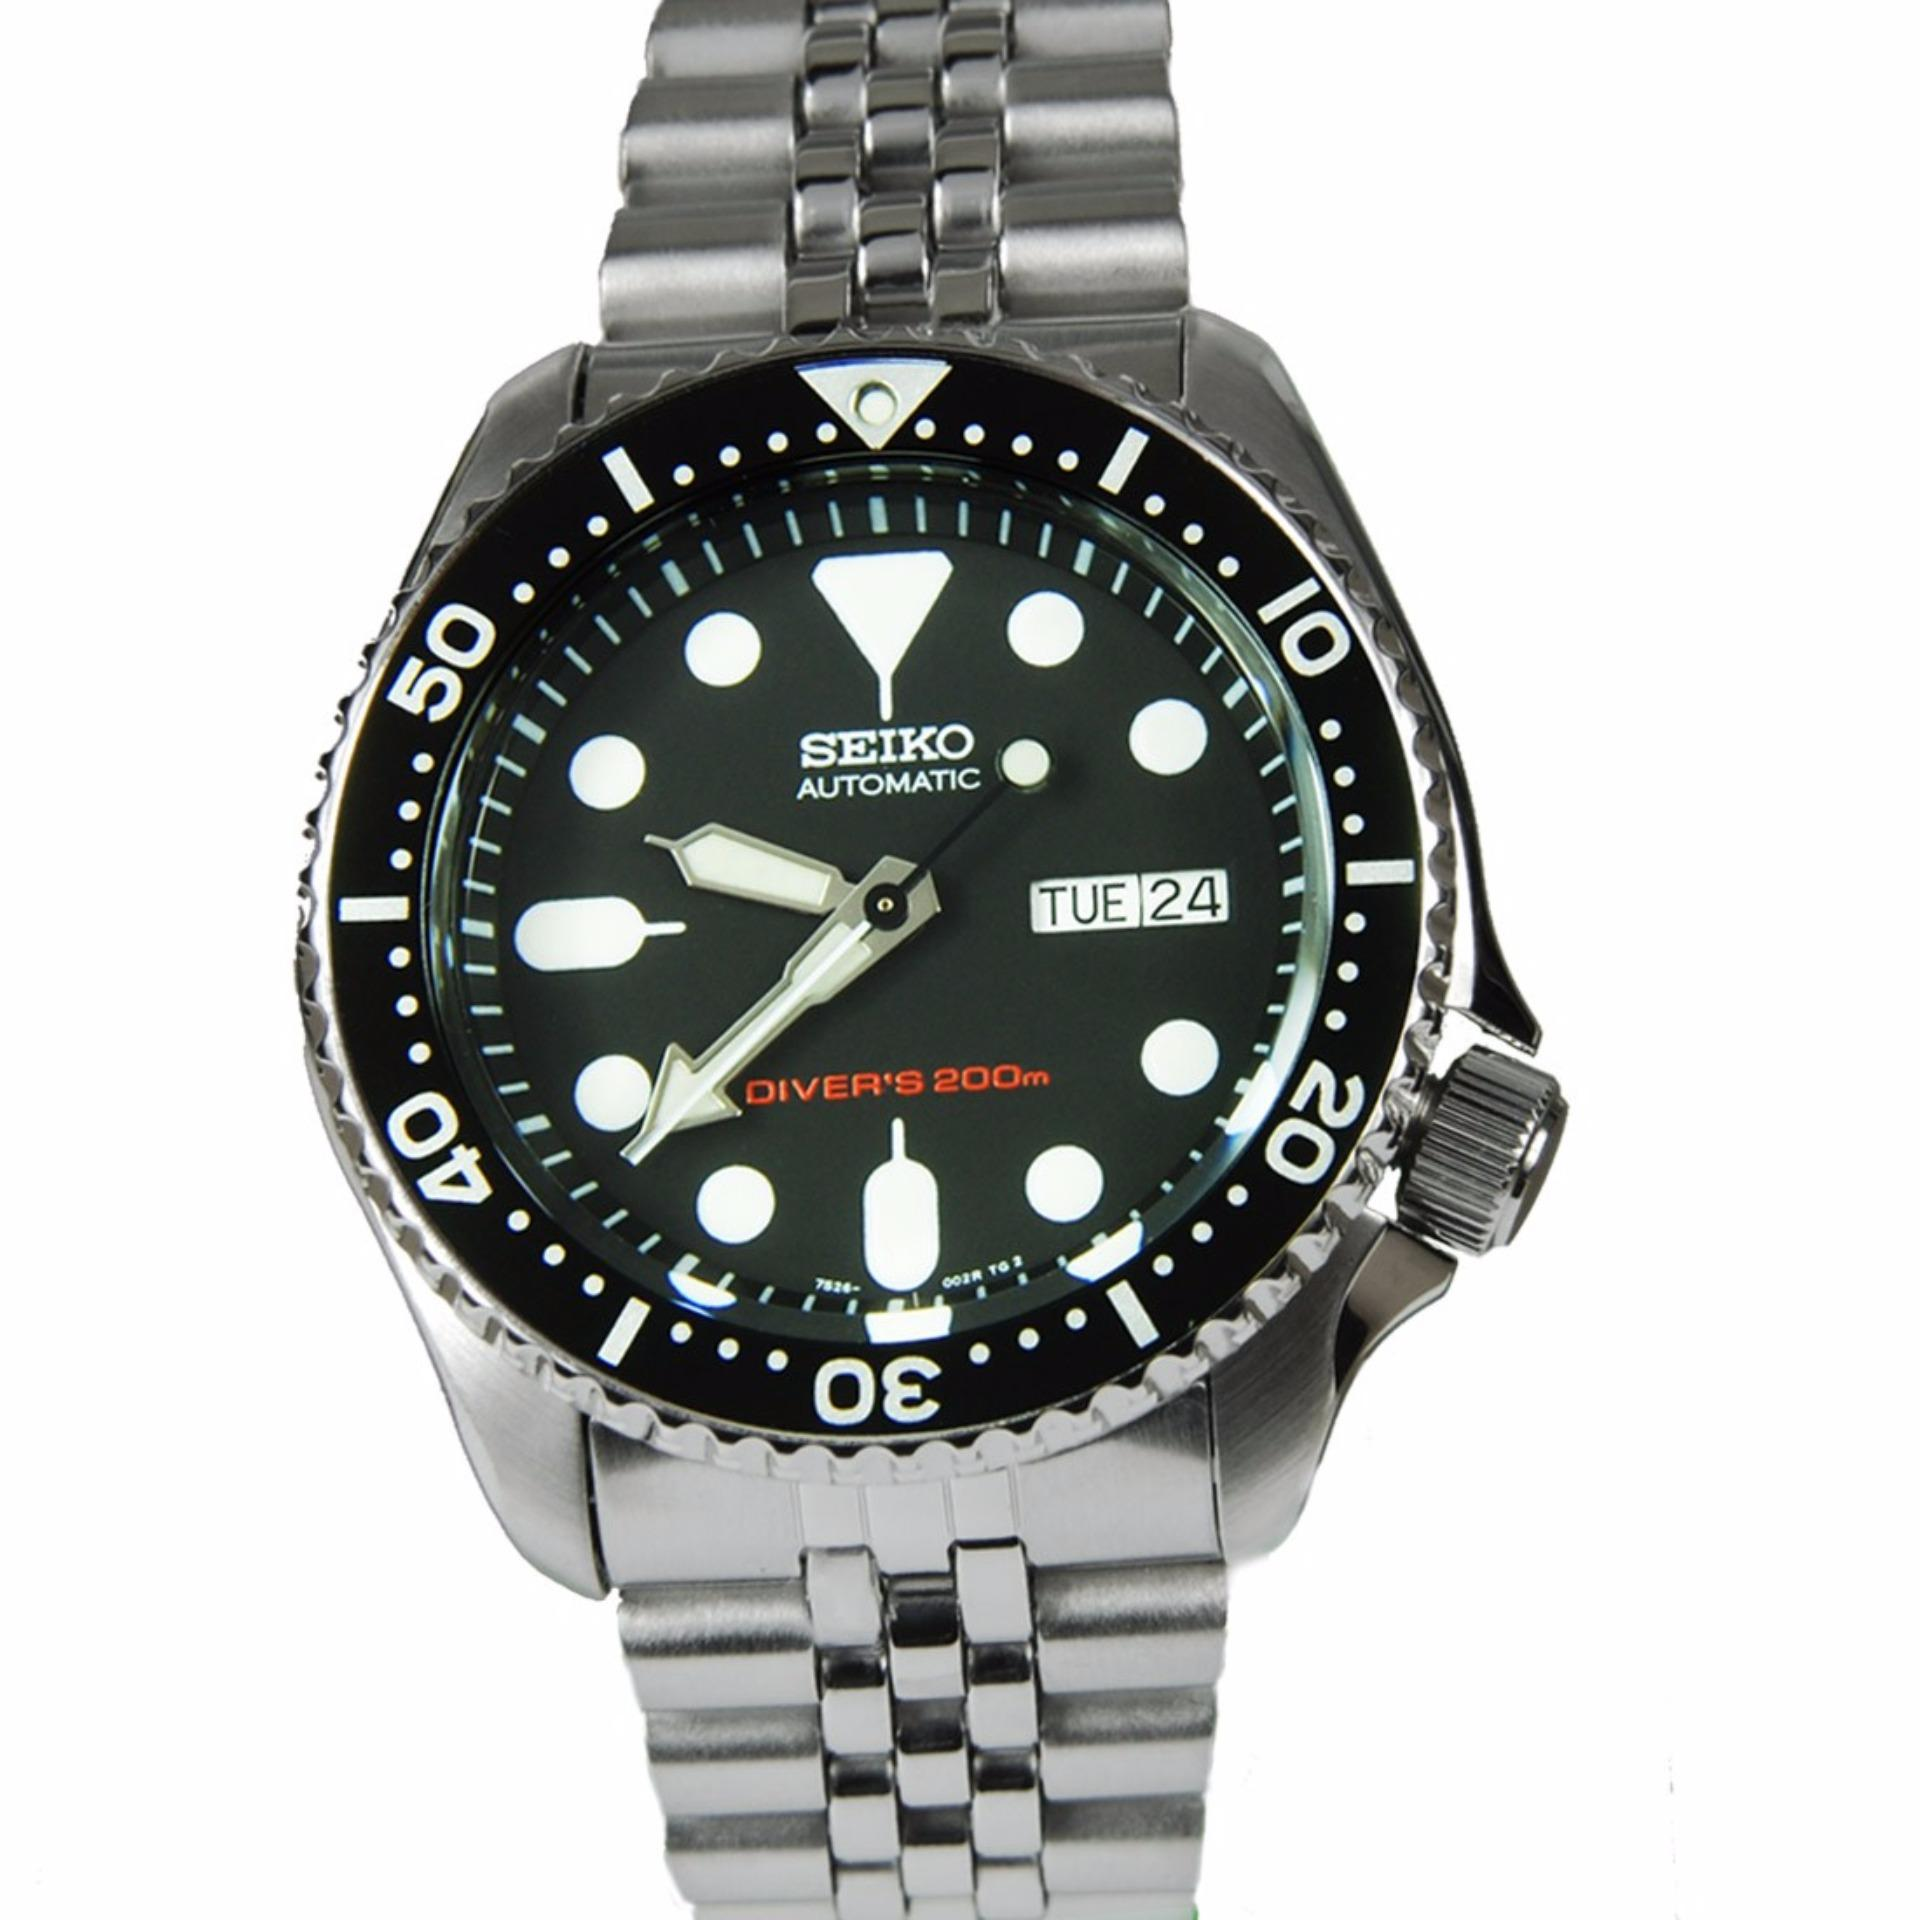 Buy Seiko Watches Online Automatic Lazada Chronograph Jam Tangan Strap Stainless Steel Silver Sks521p1 Diver Mens Watch Skx007k2